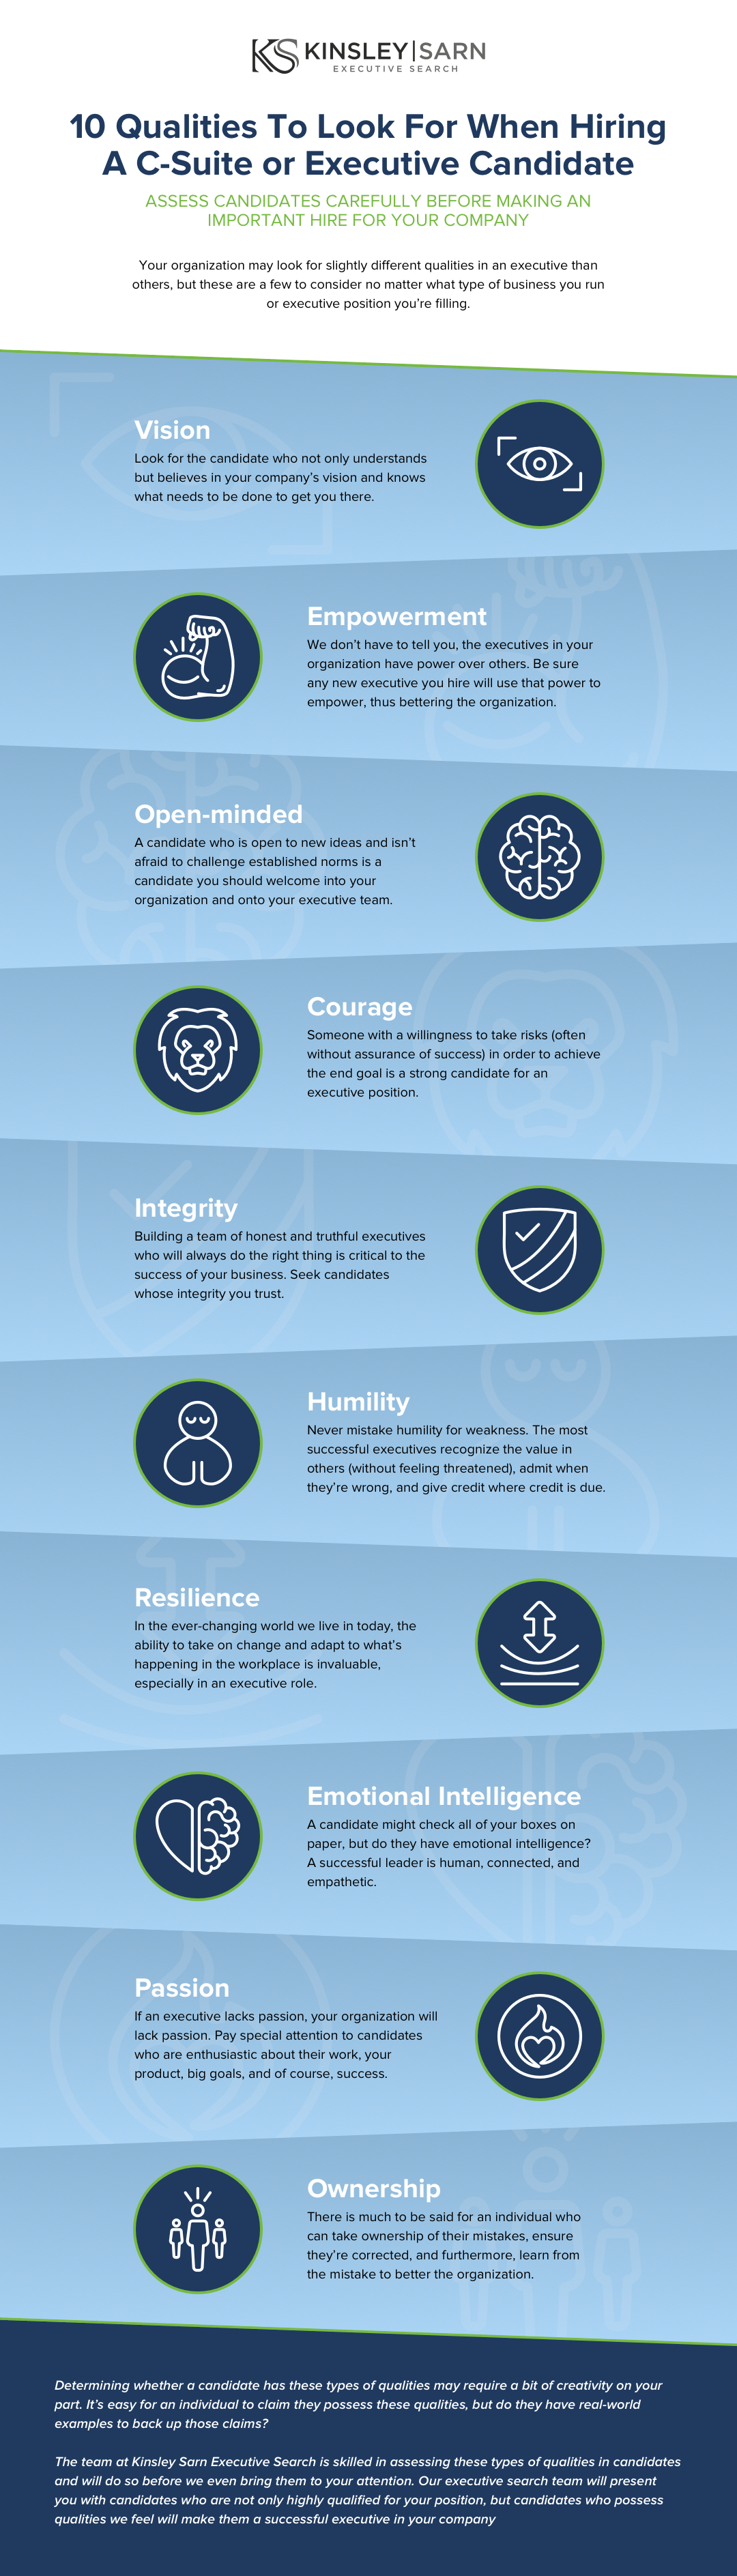 qualities to look for in candidate infographic